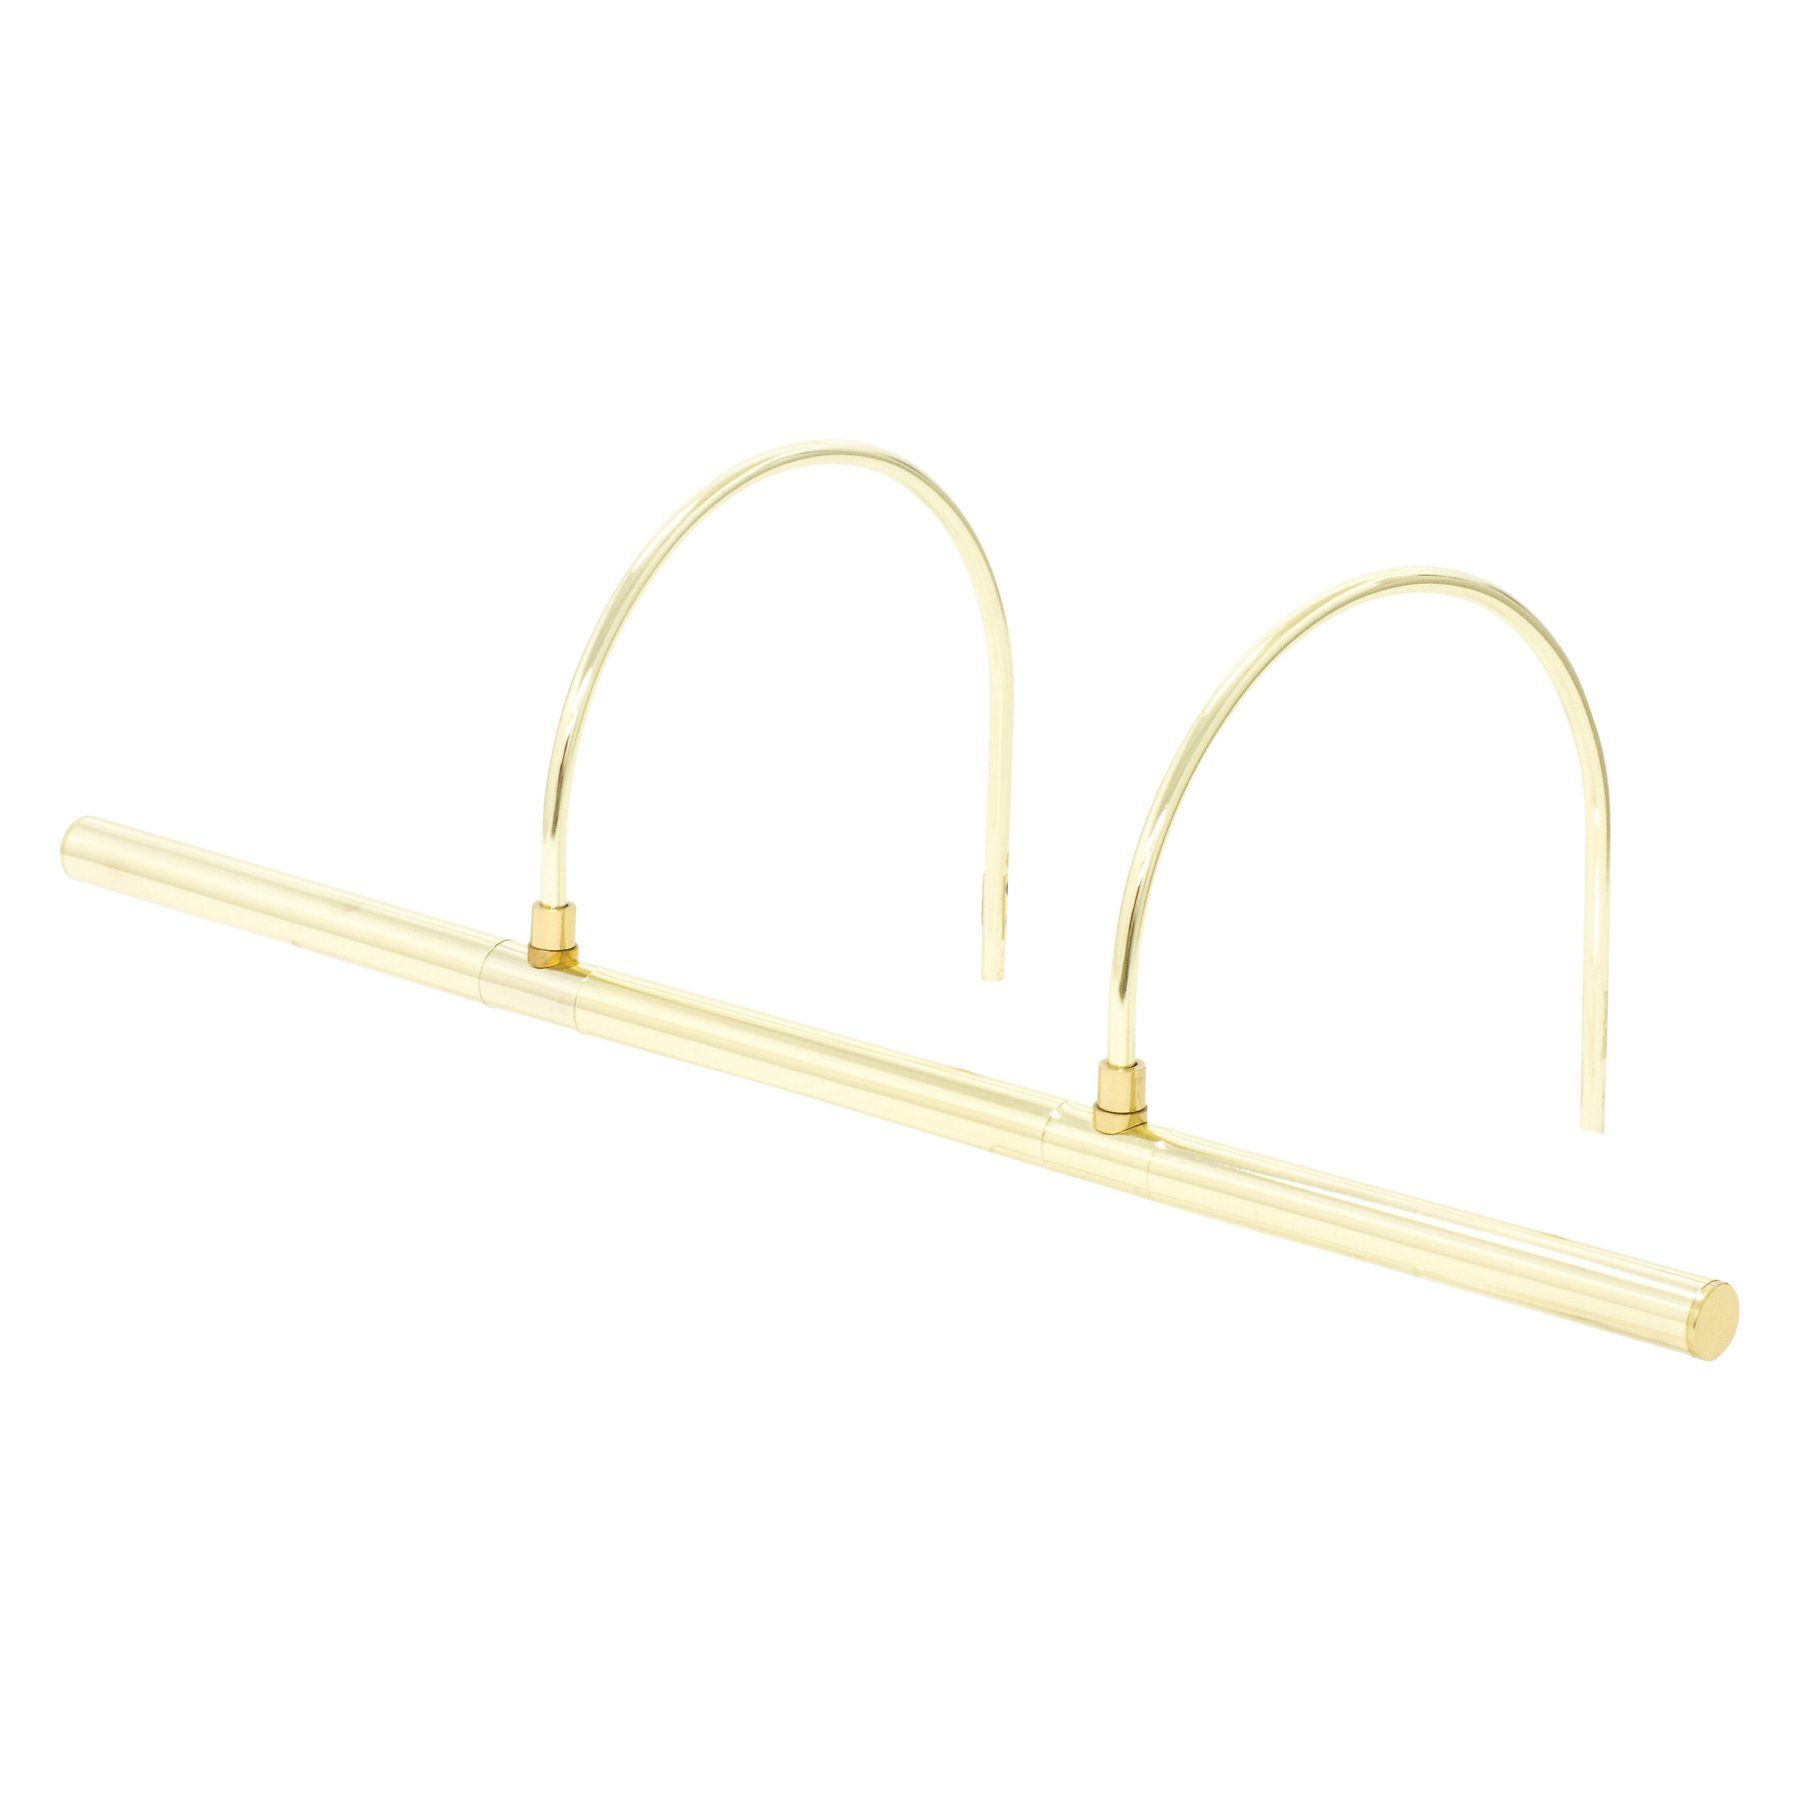 House of Troy Advent APL25 Picture Light - APL25-52